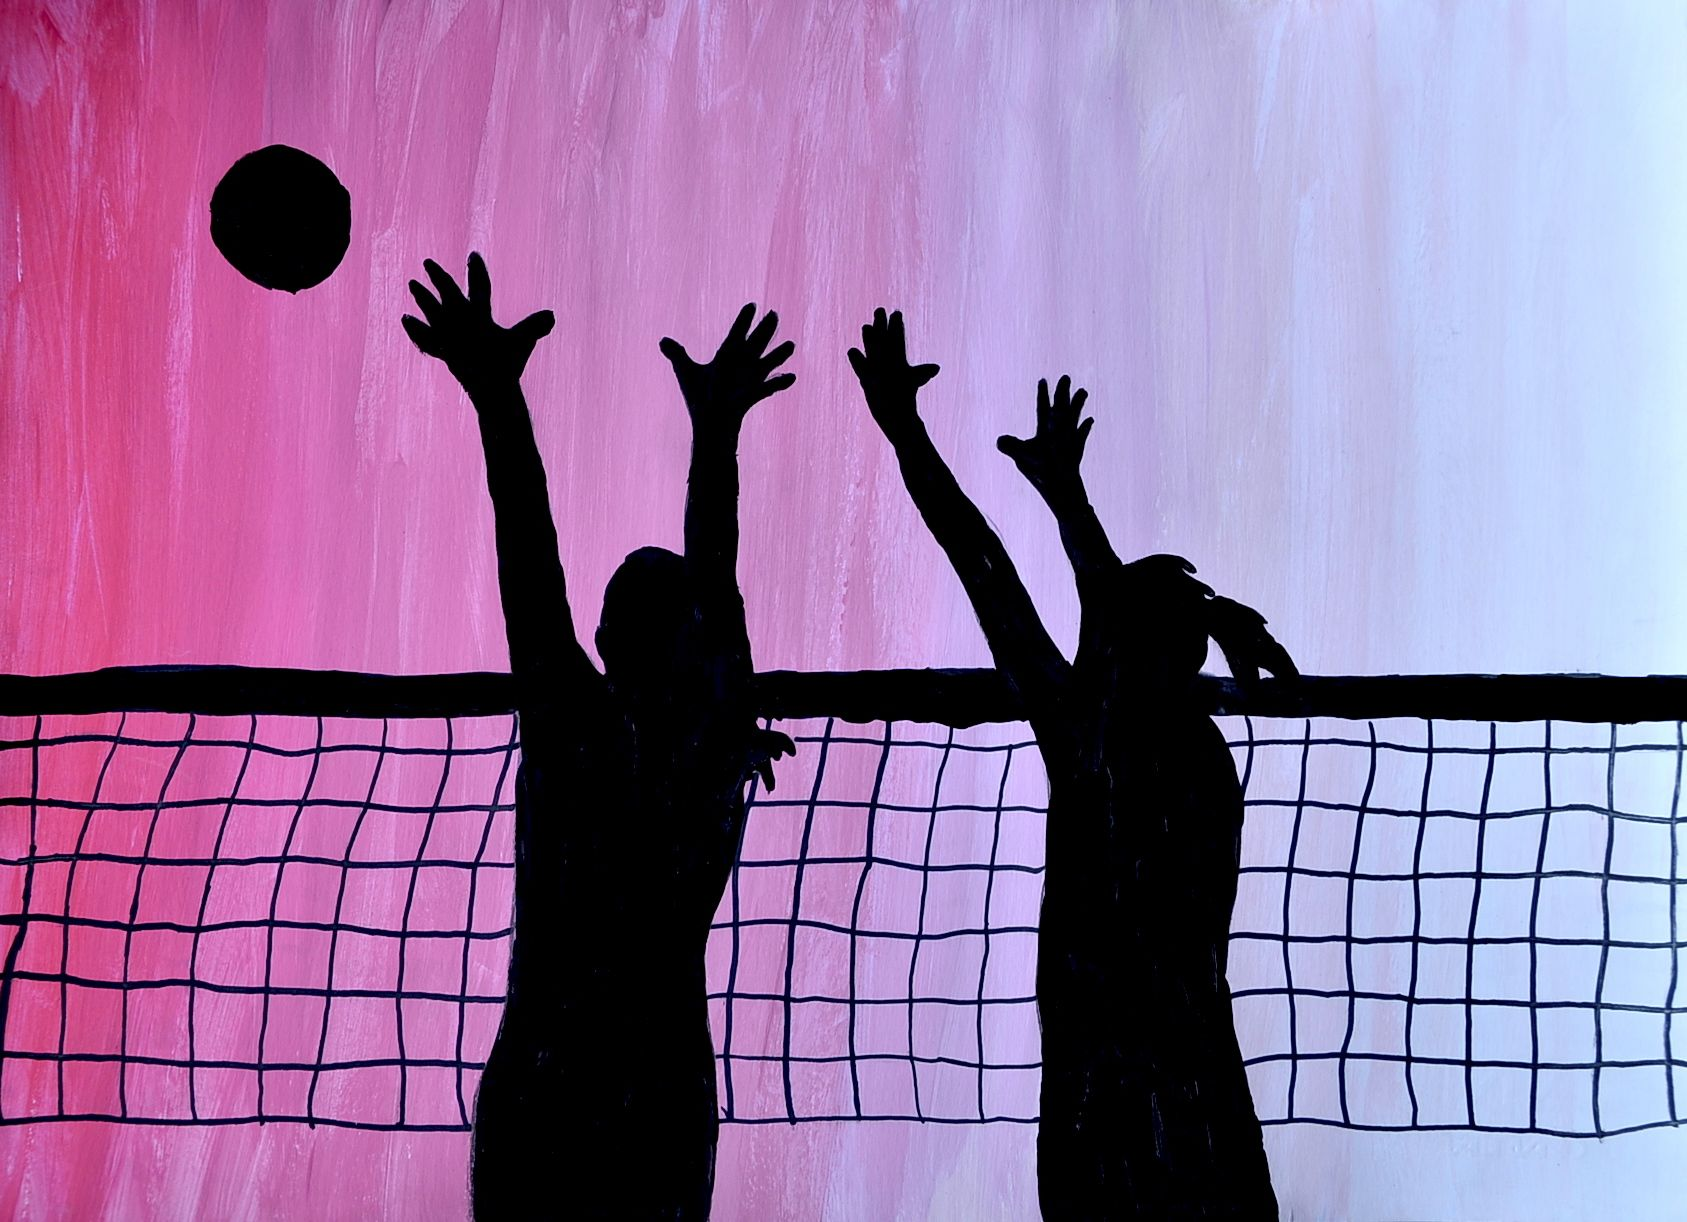 Silhouette On Tonal Gradations Volleyball Wallpaper High School Art Projects Volleyball Silhouette